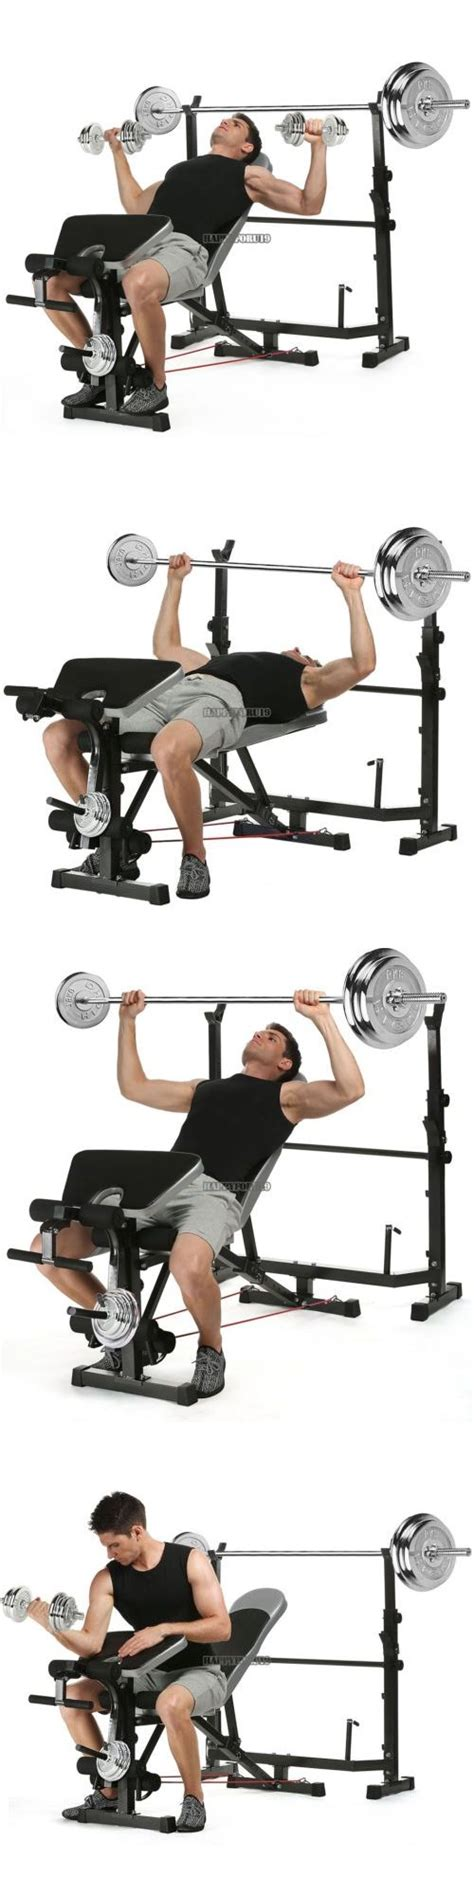 bench lifting set 1000 ideas about olympic weights on pinterest olympic